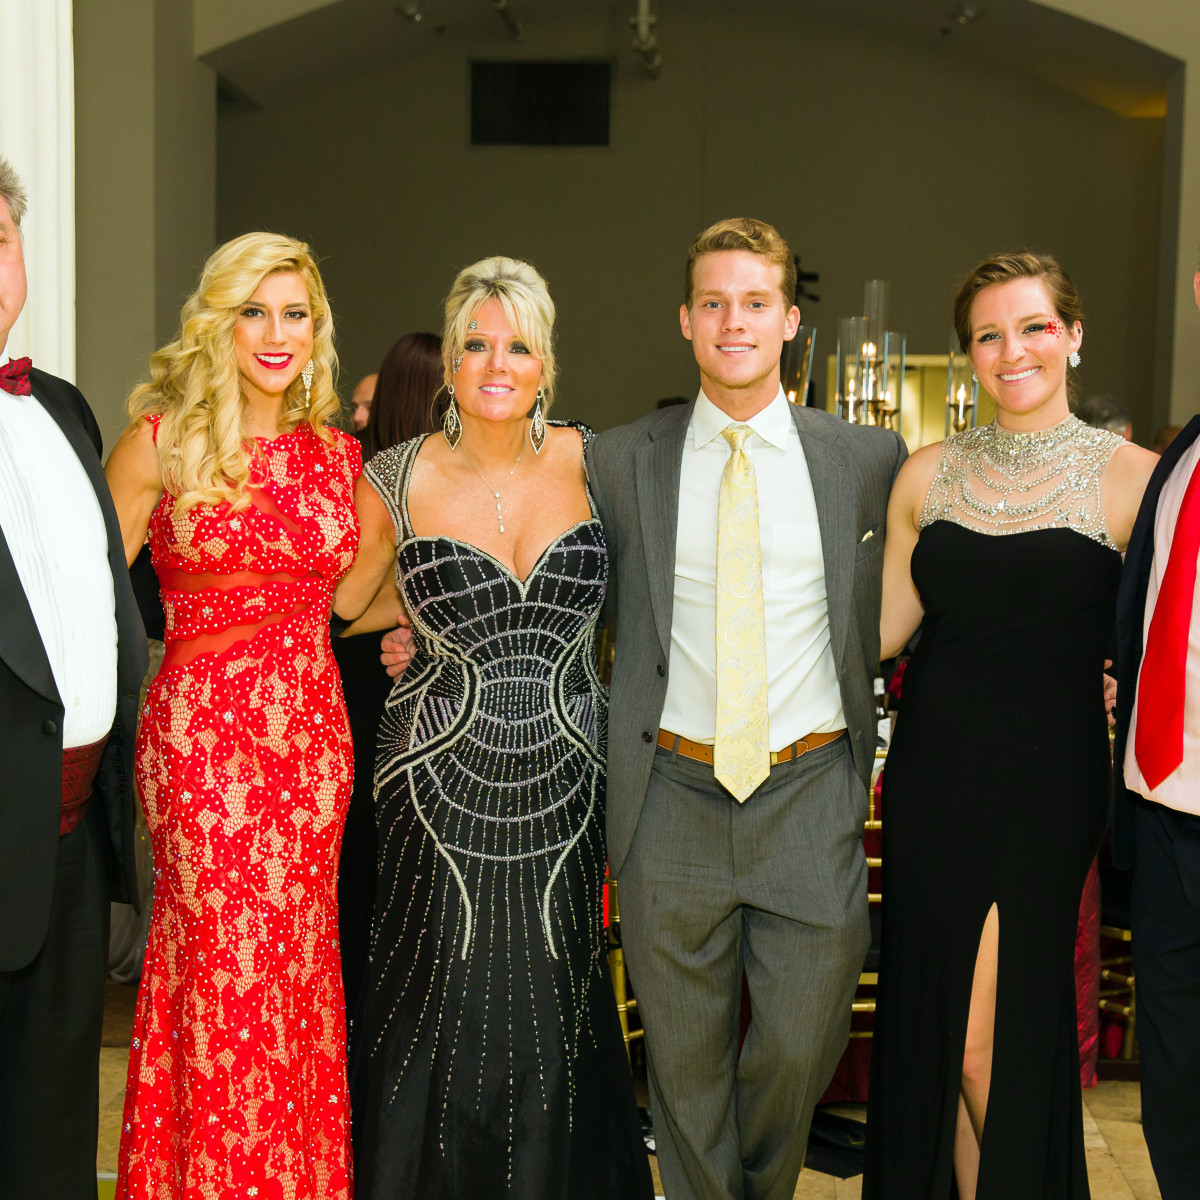 Houston, Jamies Hope Gala, October 2015, John Ehrman, Angela Zatopek, Elizabeth Ehrman, Christopher Zatopek, Audrey Zatopek, Joshus Zatopek